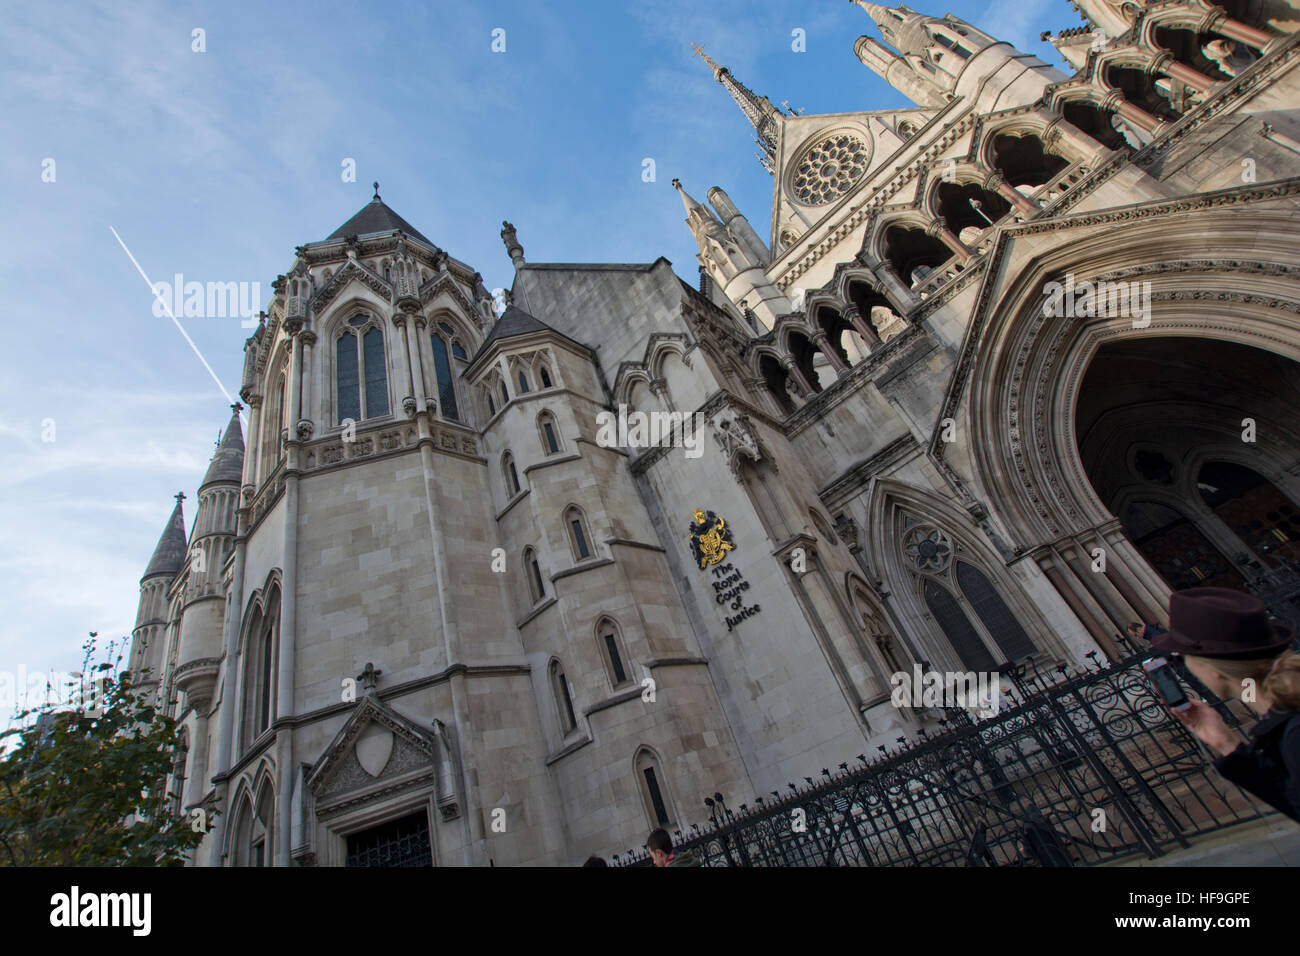 The Royal Courts of Justice in London, England - Stock Image